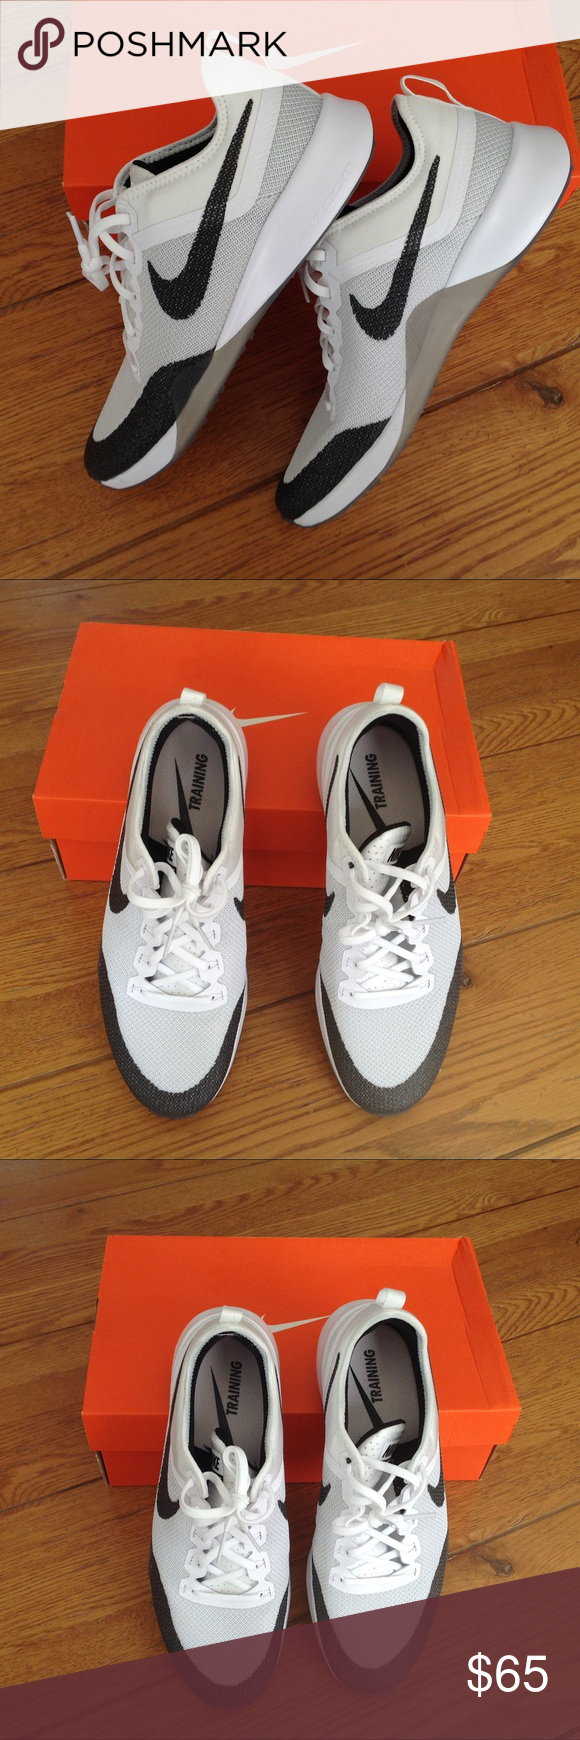 4d90f618a5f Women s Nike Air Zoom TR Dynamic✨Size 9.5 Nike Women s Zoom Dynamic  Trainer✨Mesh Upper enhances breathability and fit✨Flywire cables secure the  midfoot ...